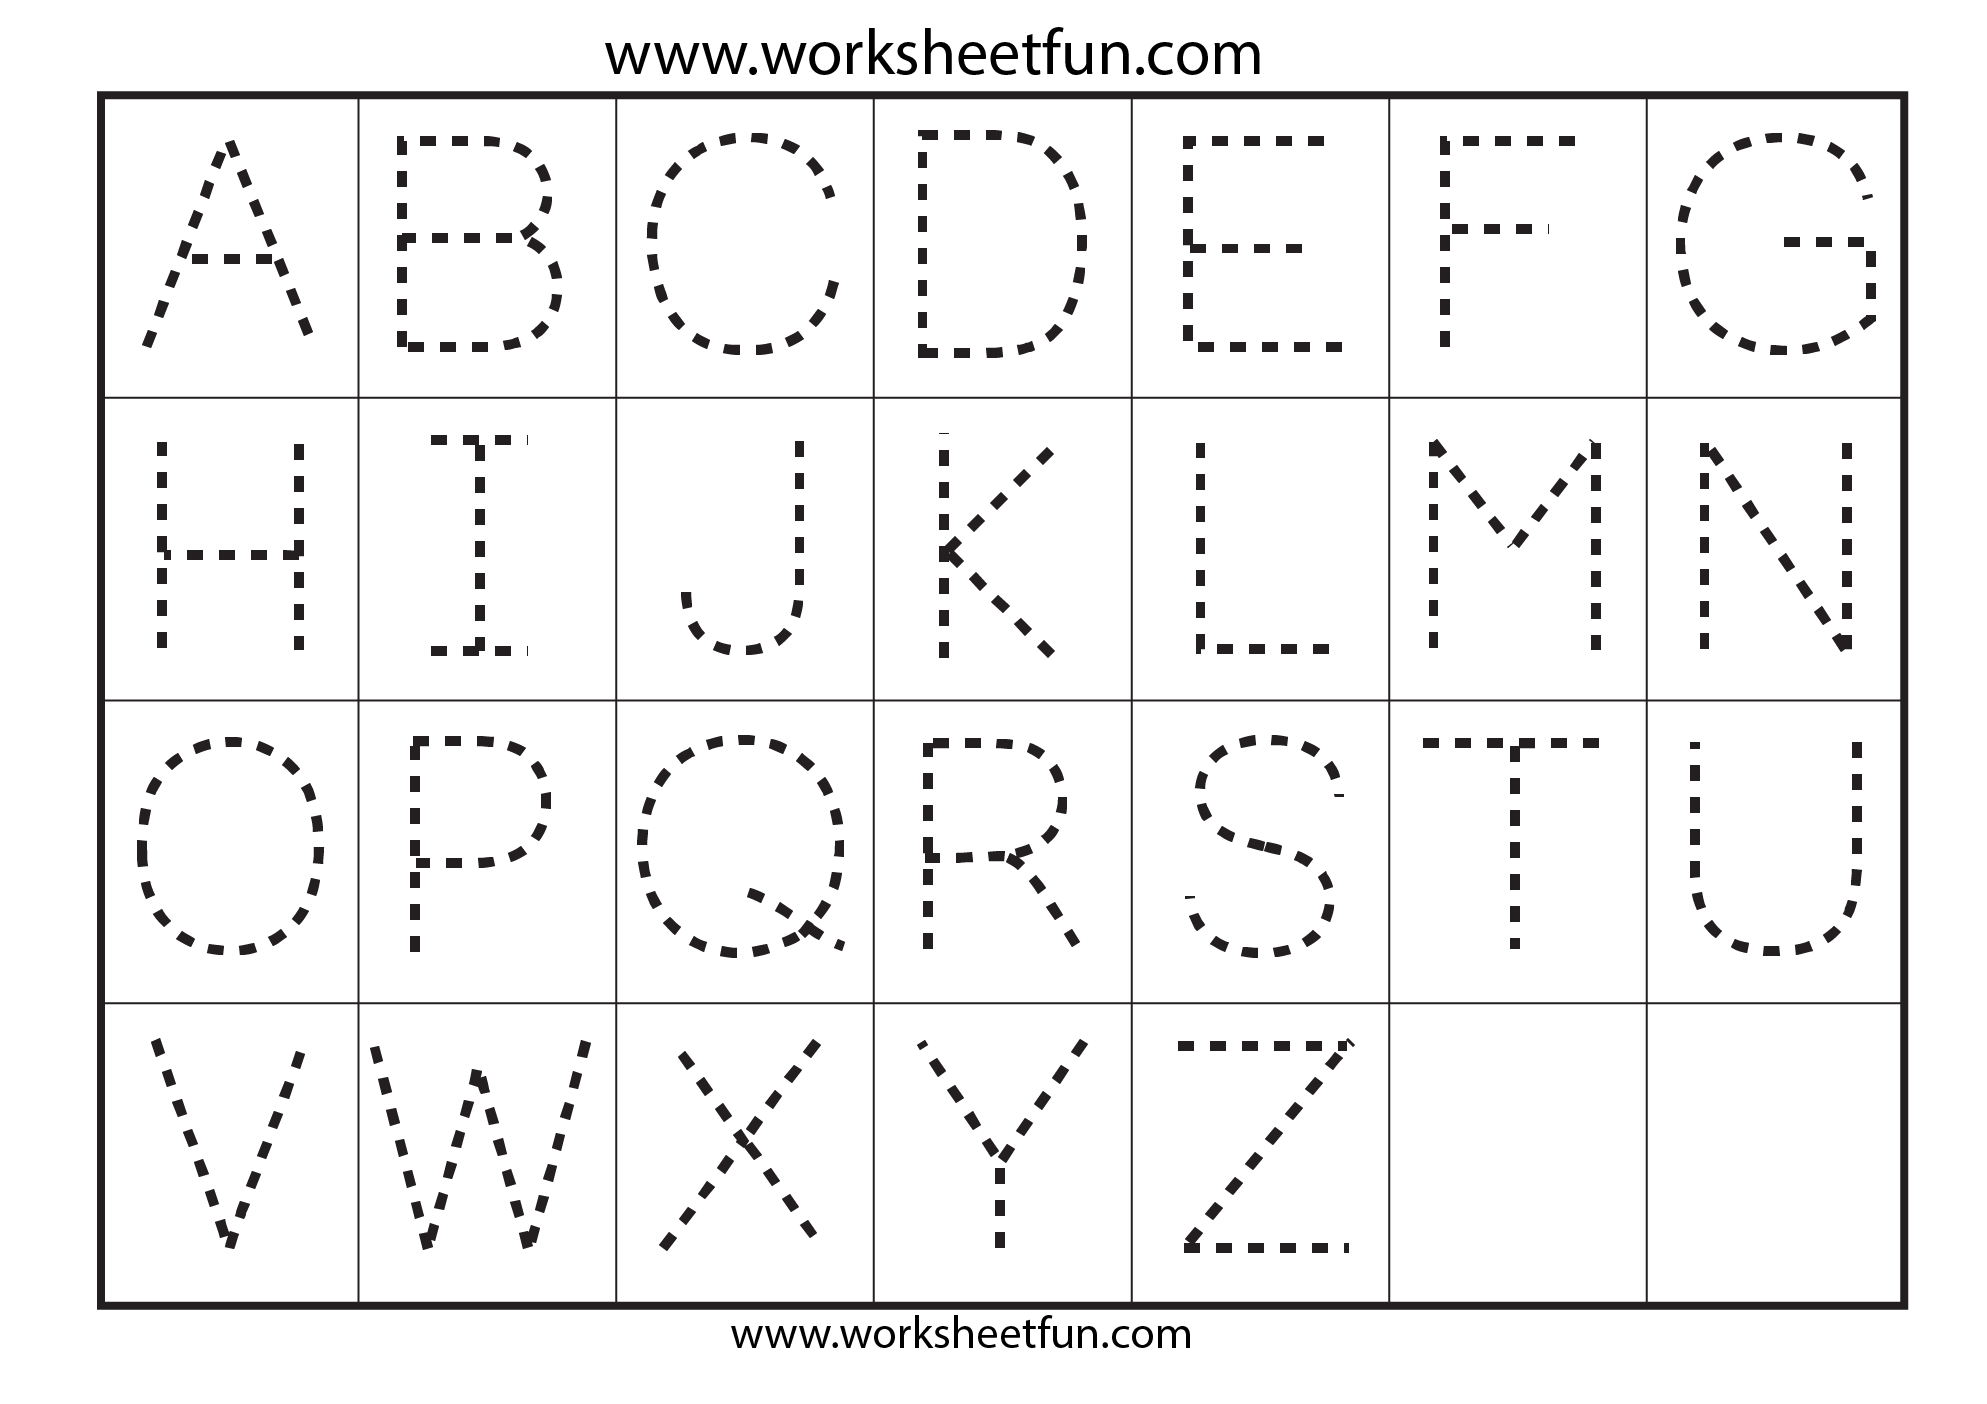 Worksheet Tracing The Alphabet Worksheets For Kindergarten abc worksheets for kindergarten tracing 7 free printable worksheetfun